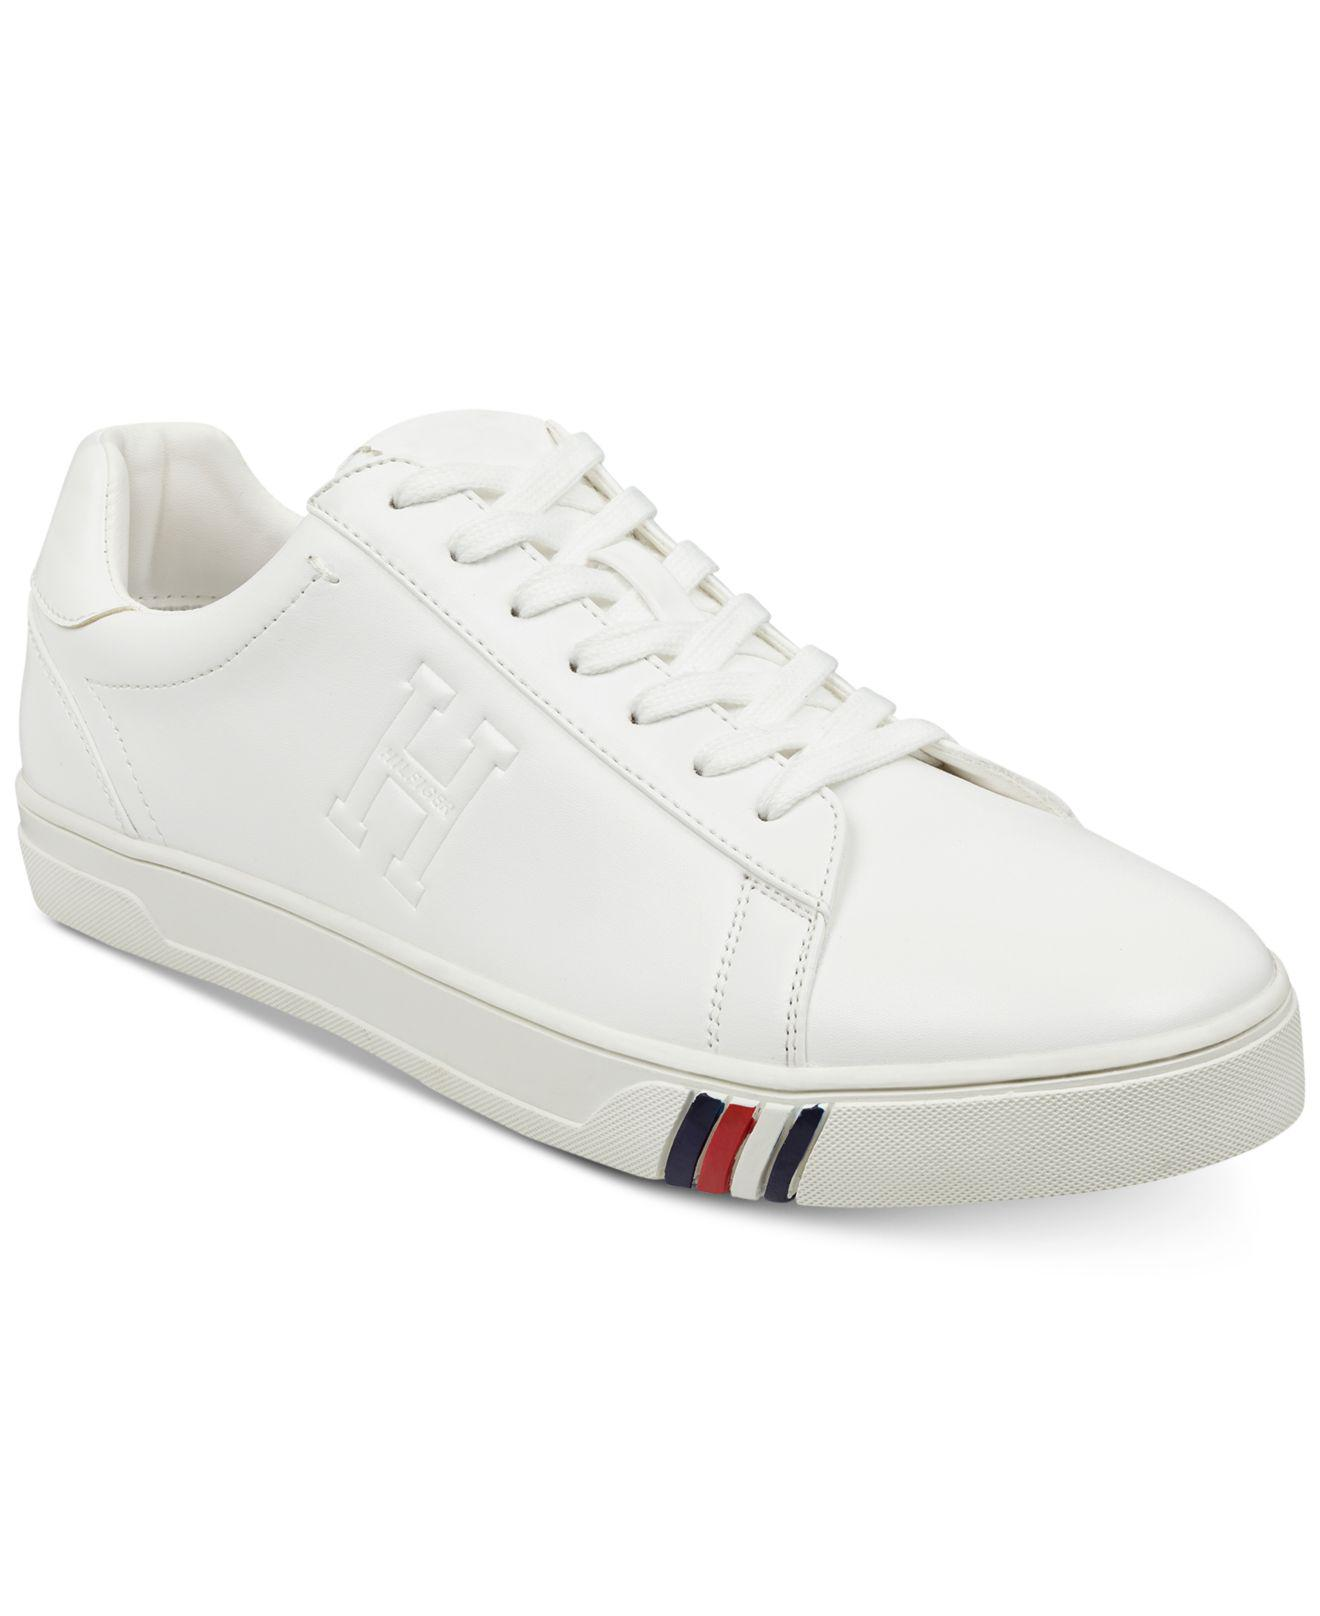 ea056cc3903a8f Lyst - Tommy Hilfiger Jeron Sneakers in White